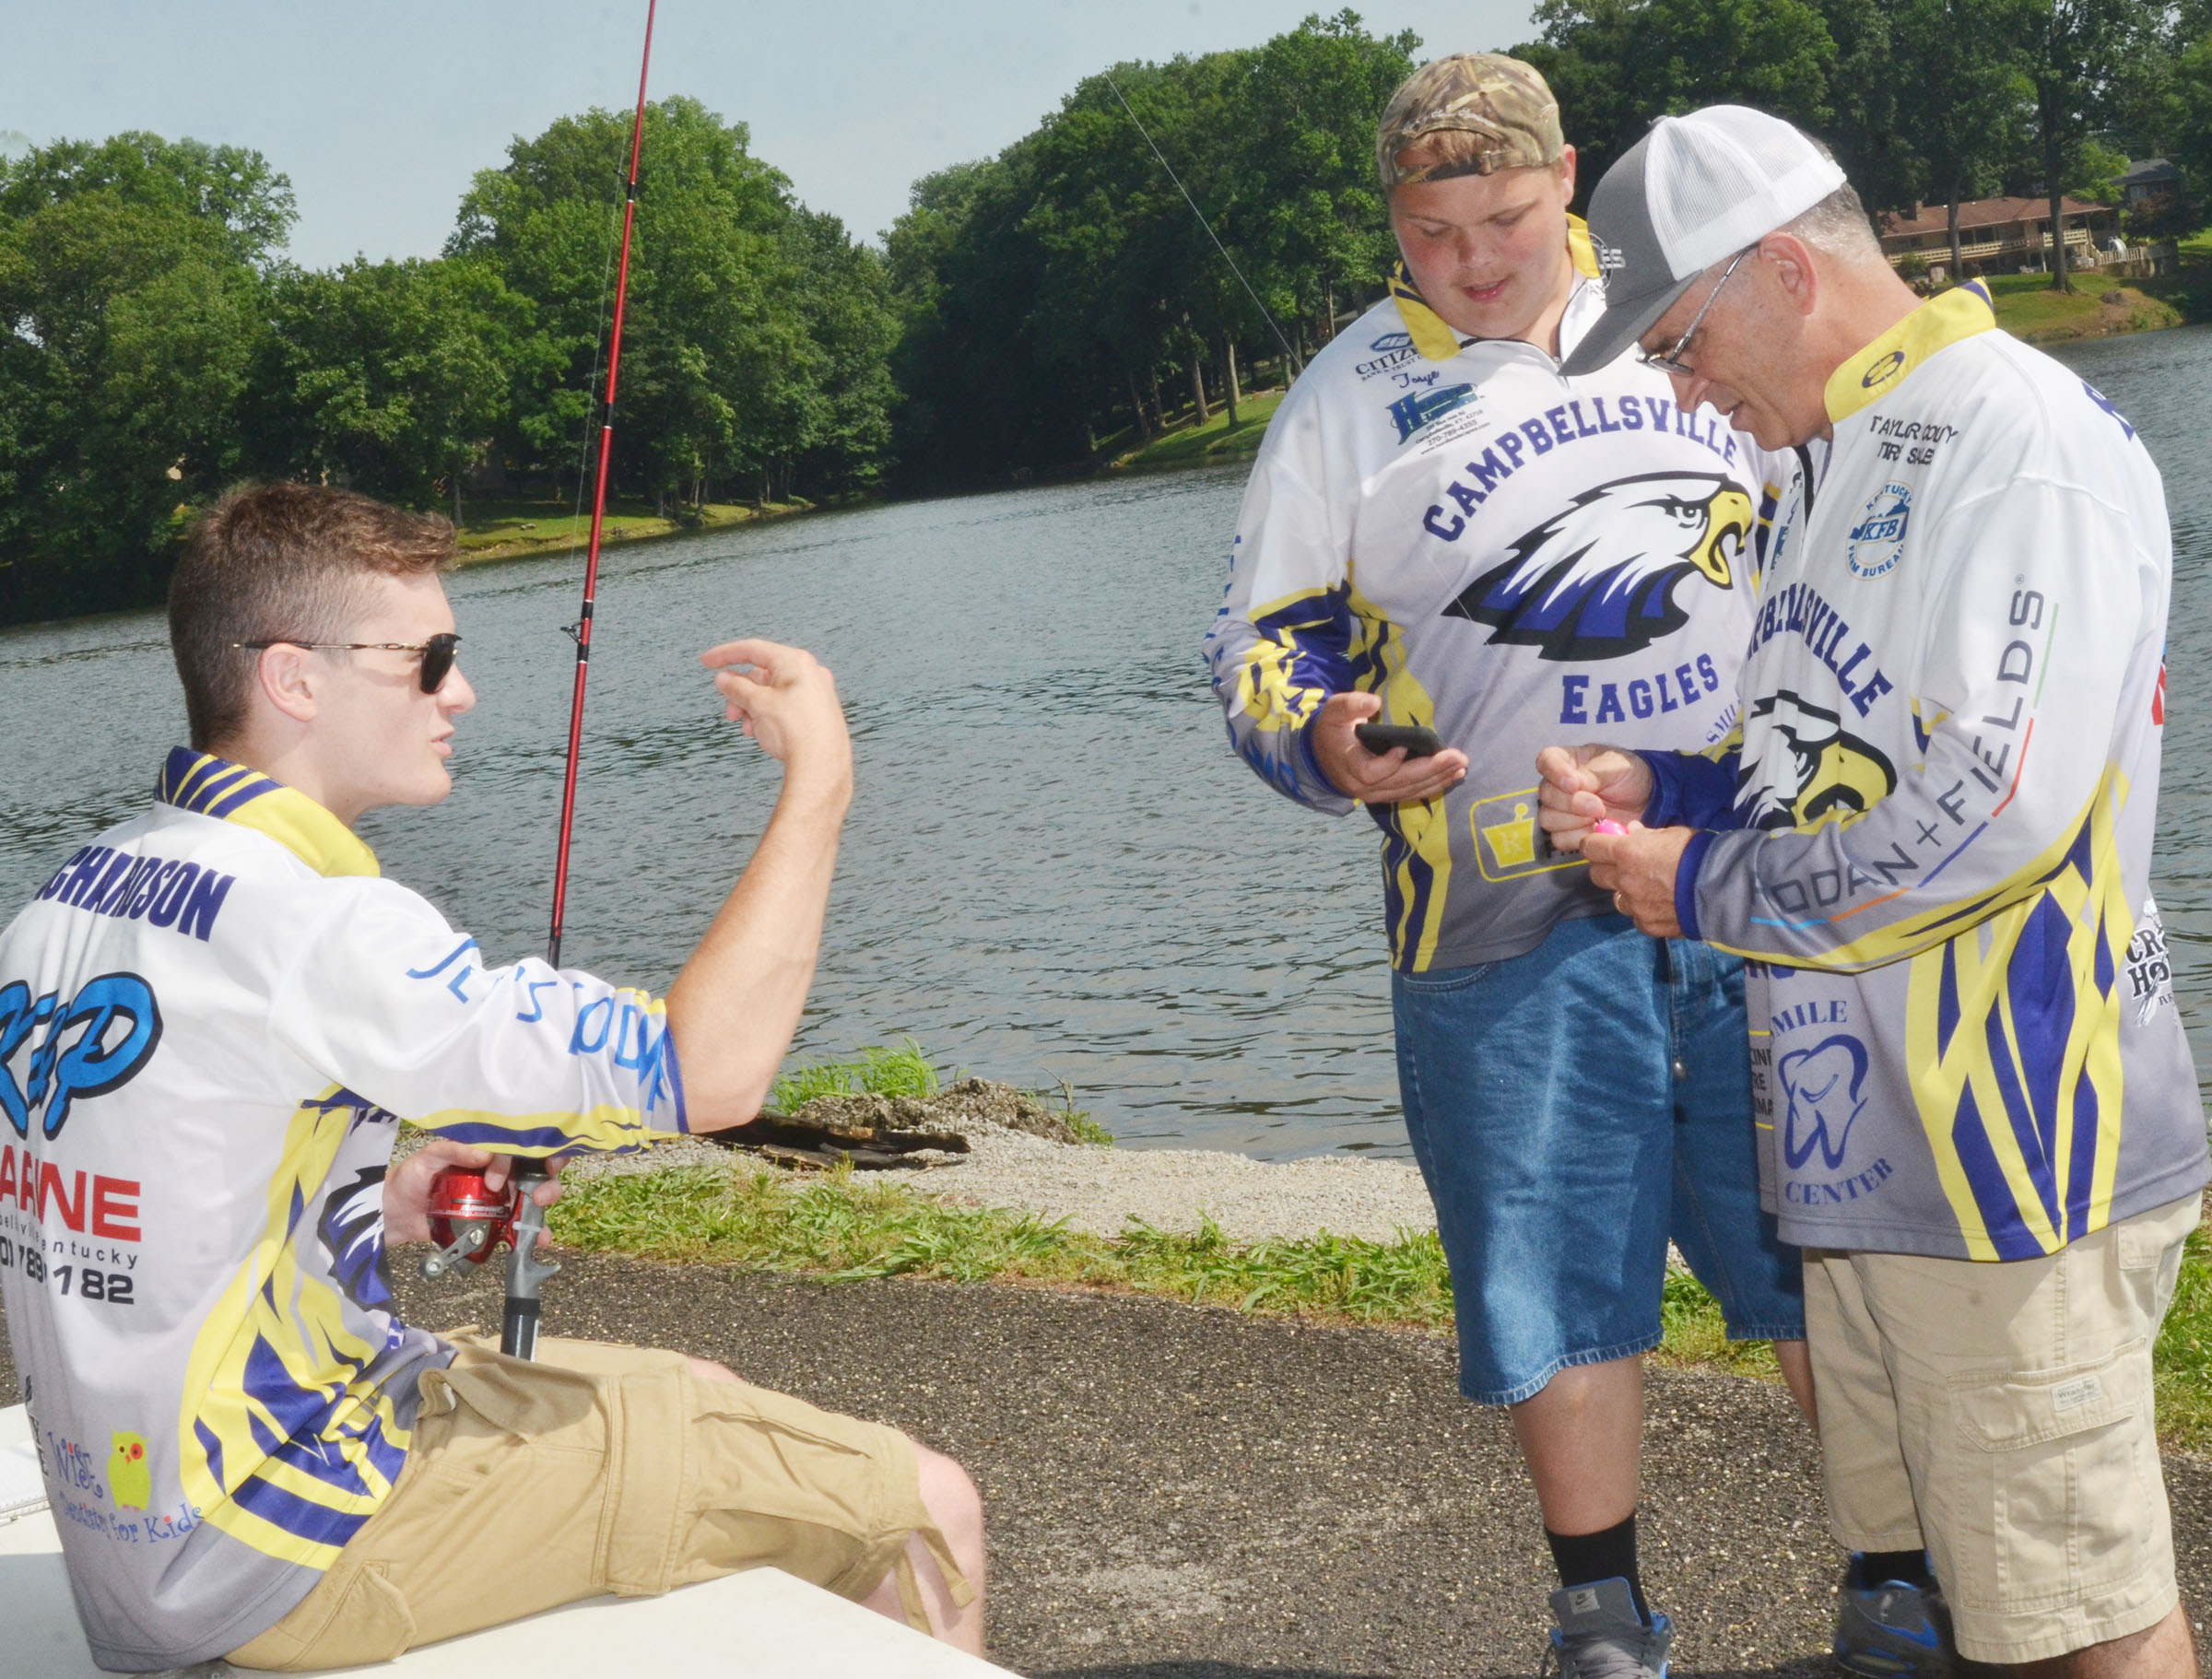 CHS fishing team members Bryce Richardson, at left, and Toyse Cox, who will be seniors this fall, and fishing coach Jeff Richardson teach how to cast.